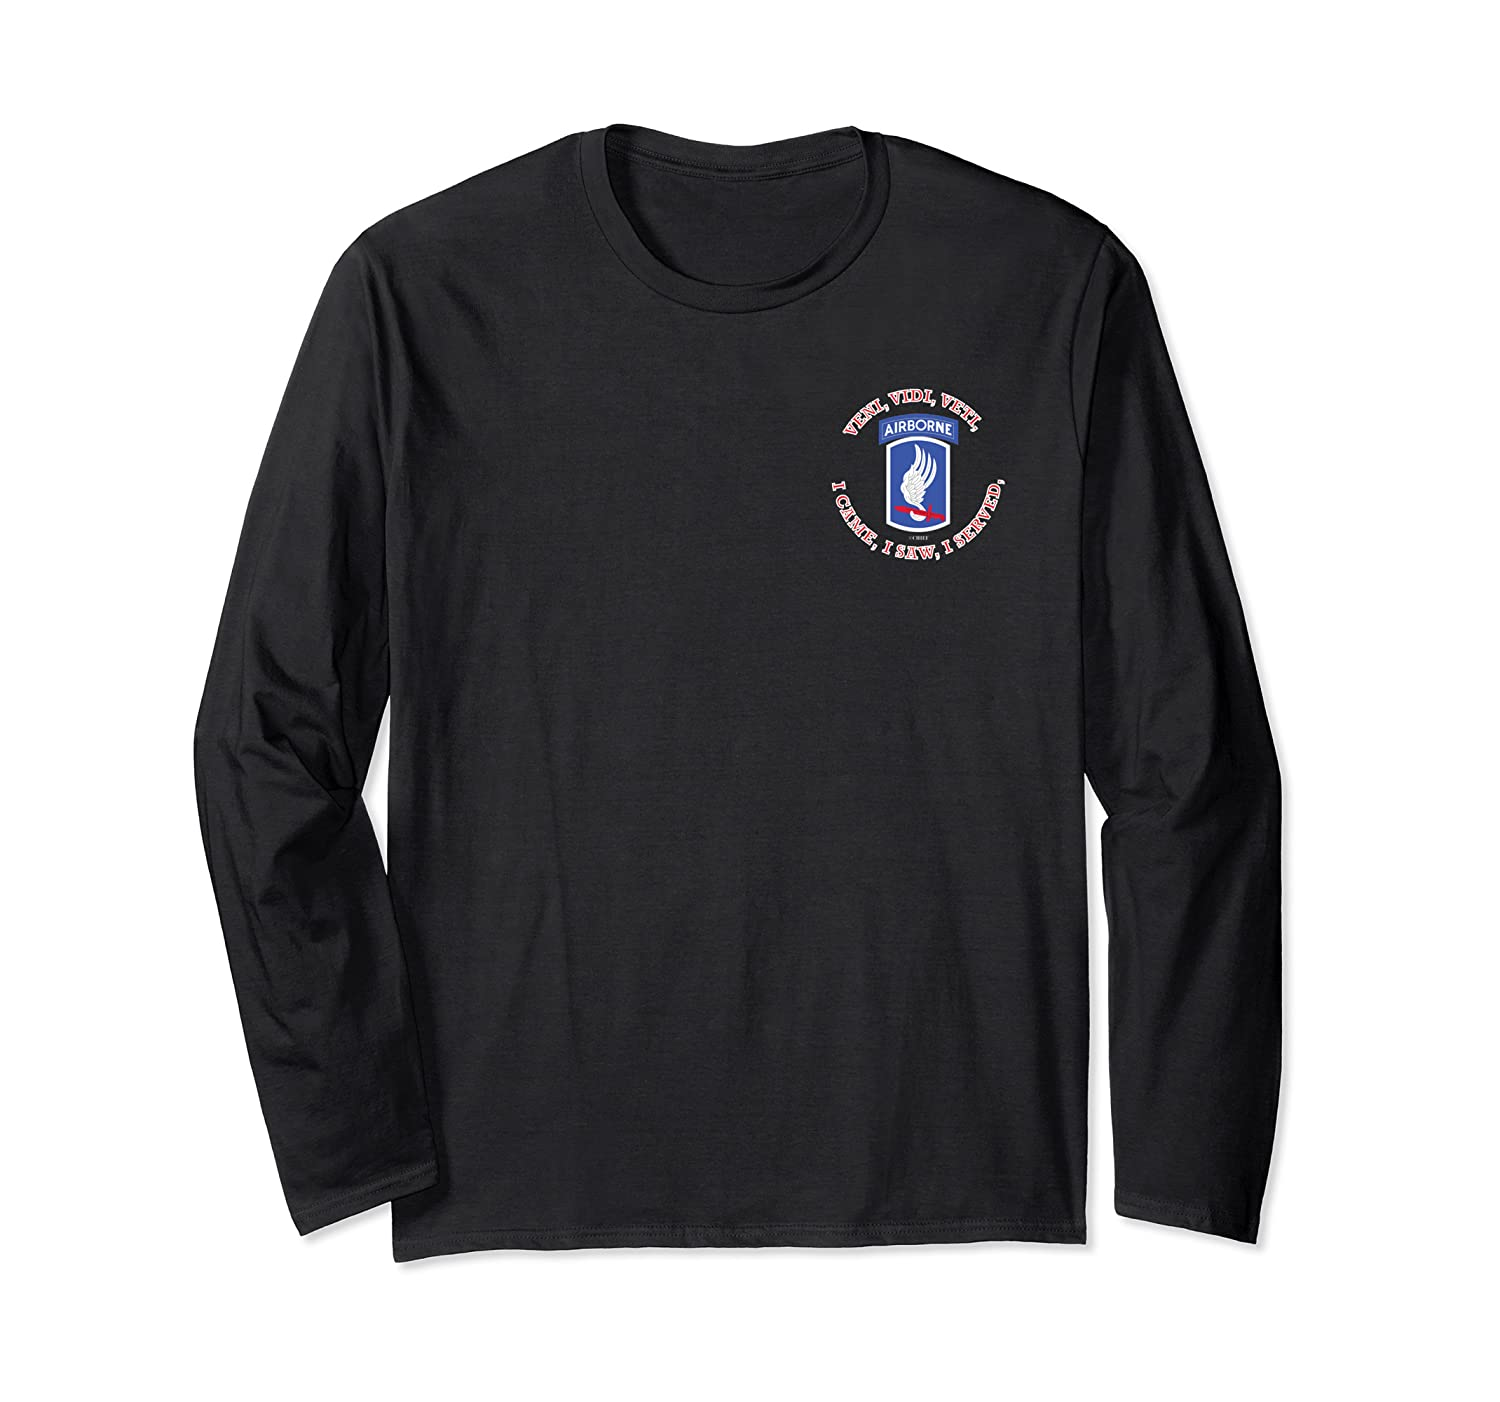 173rd Airborne Brigade Sky Soldiers Long Sleeve T-shirt